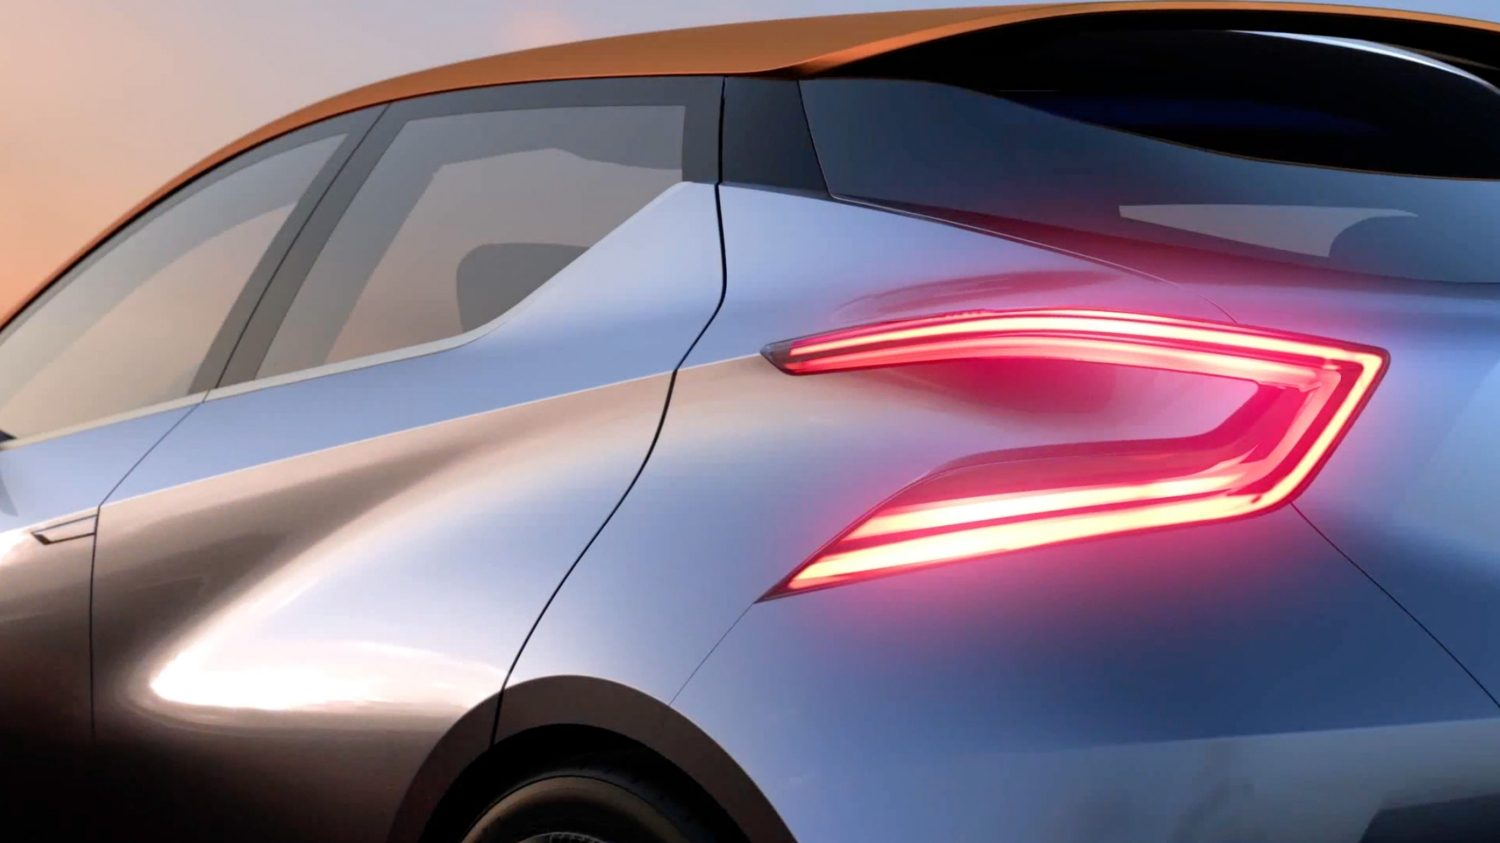 Nissan Sway Concept video.